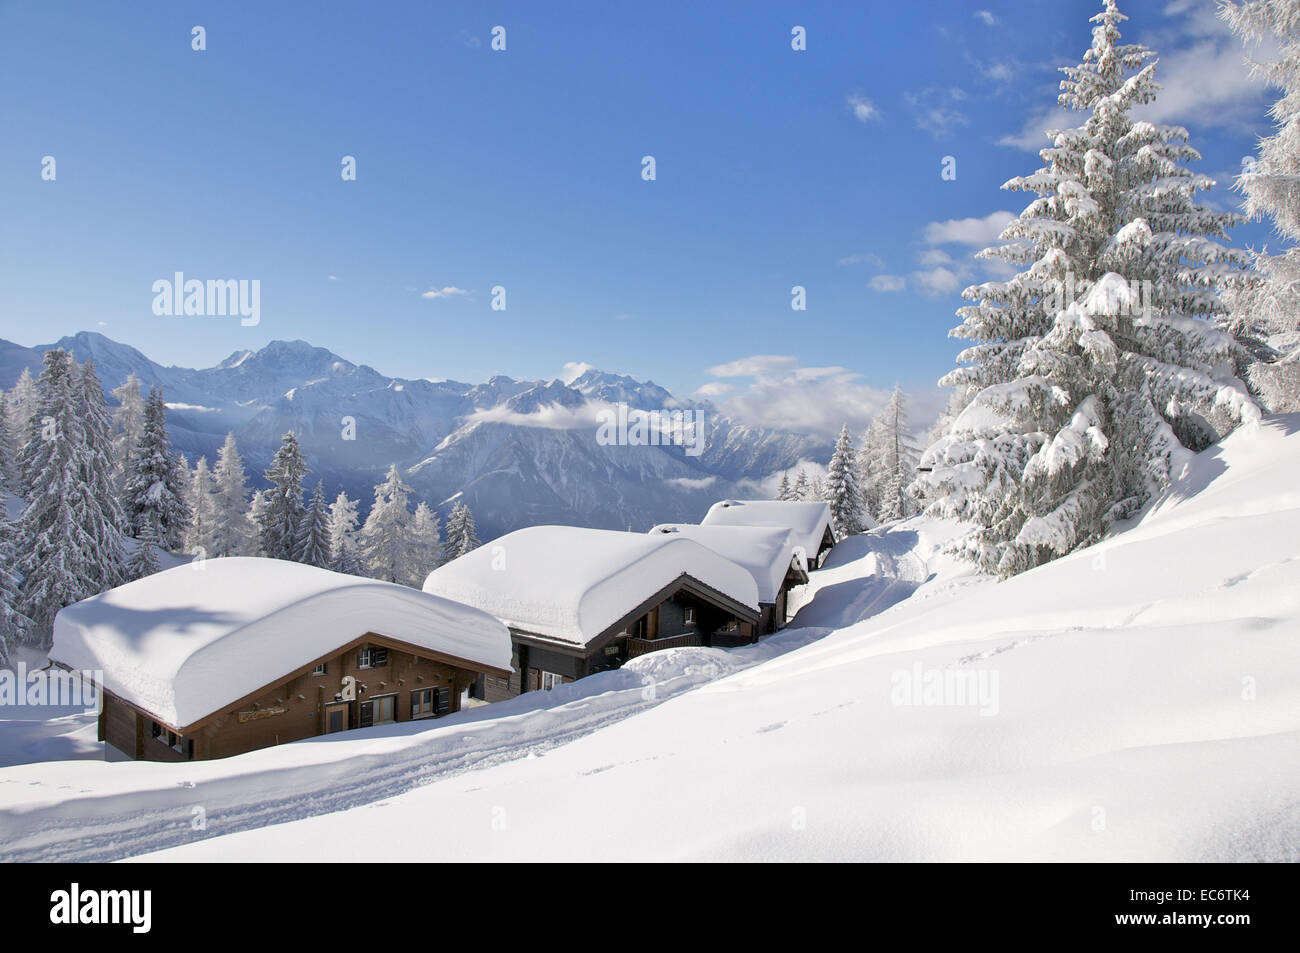 freshly snowed in chalets on Riederalp, white mountains and blue sky in the background - Stock Image